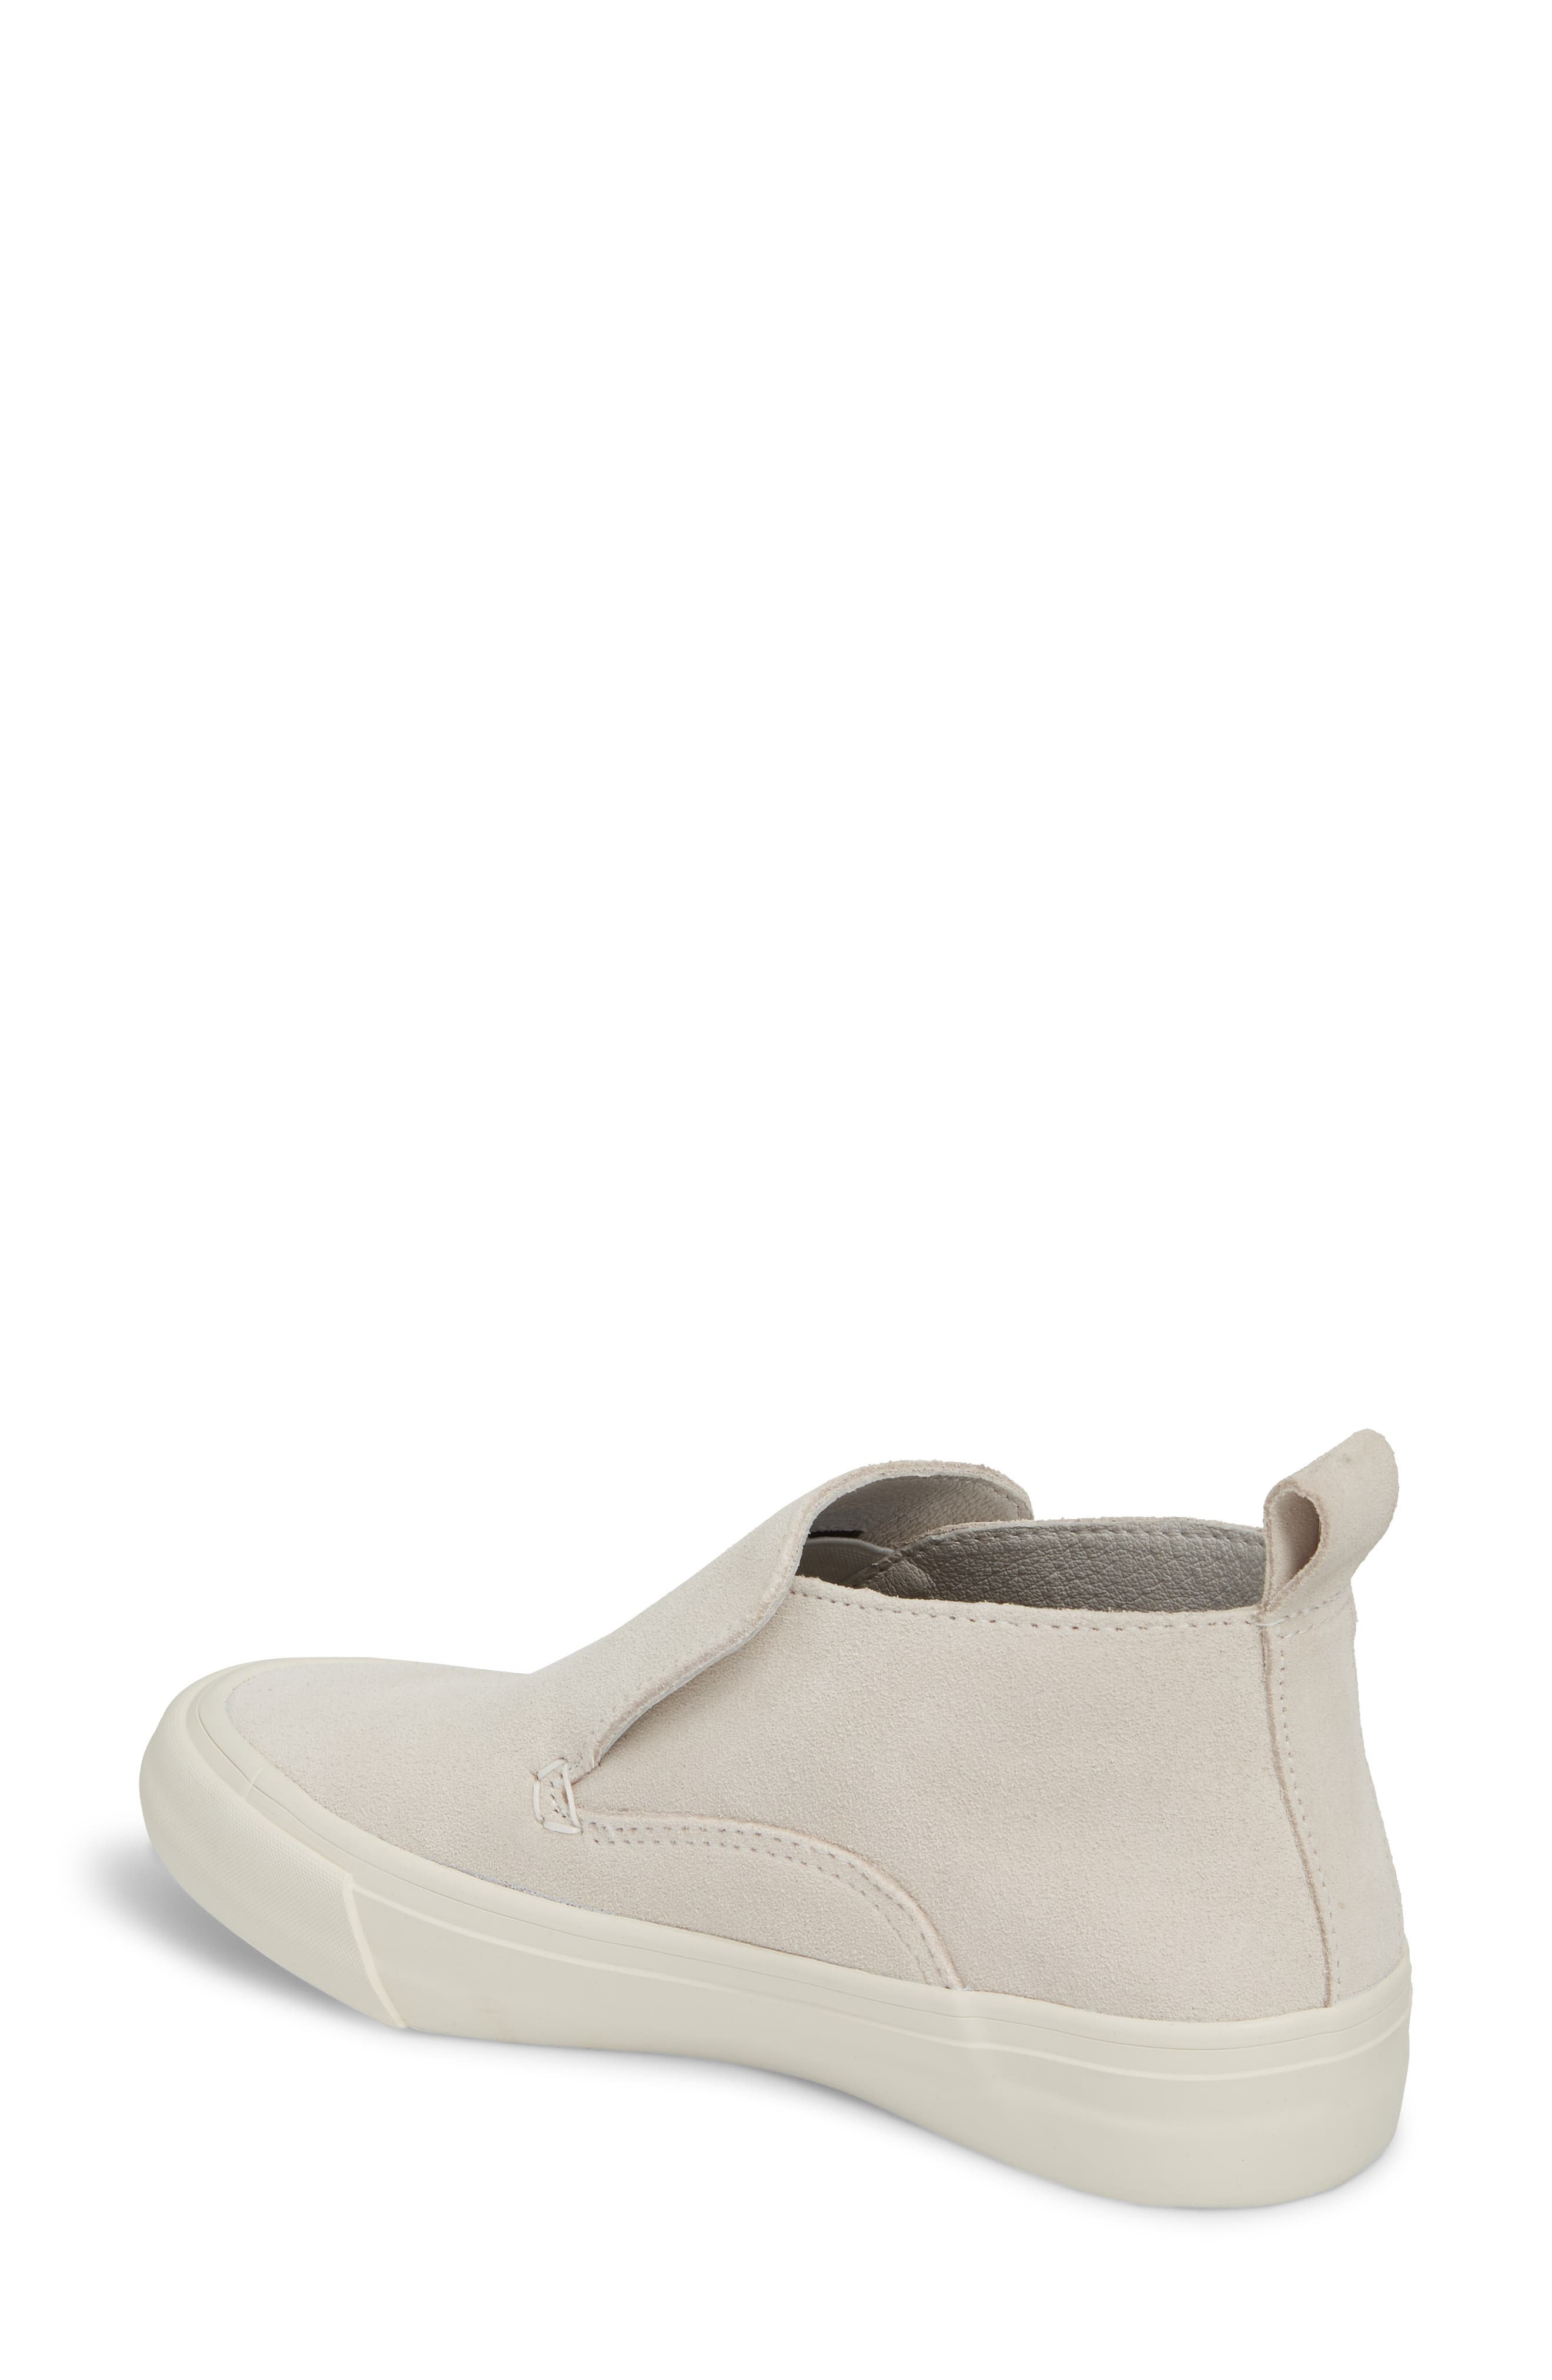 Huntington Middie Slip-On Sneaker,                             Alternate thumbnail 2, color,                             OYSTER